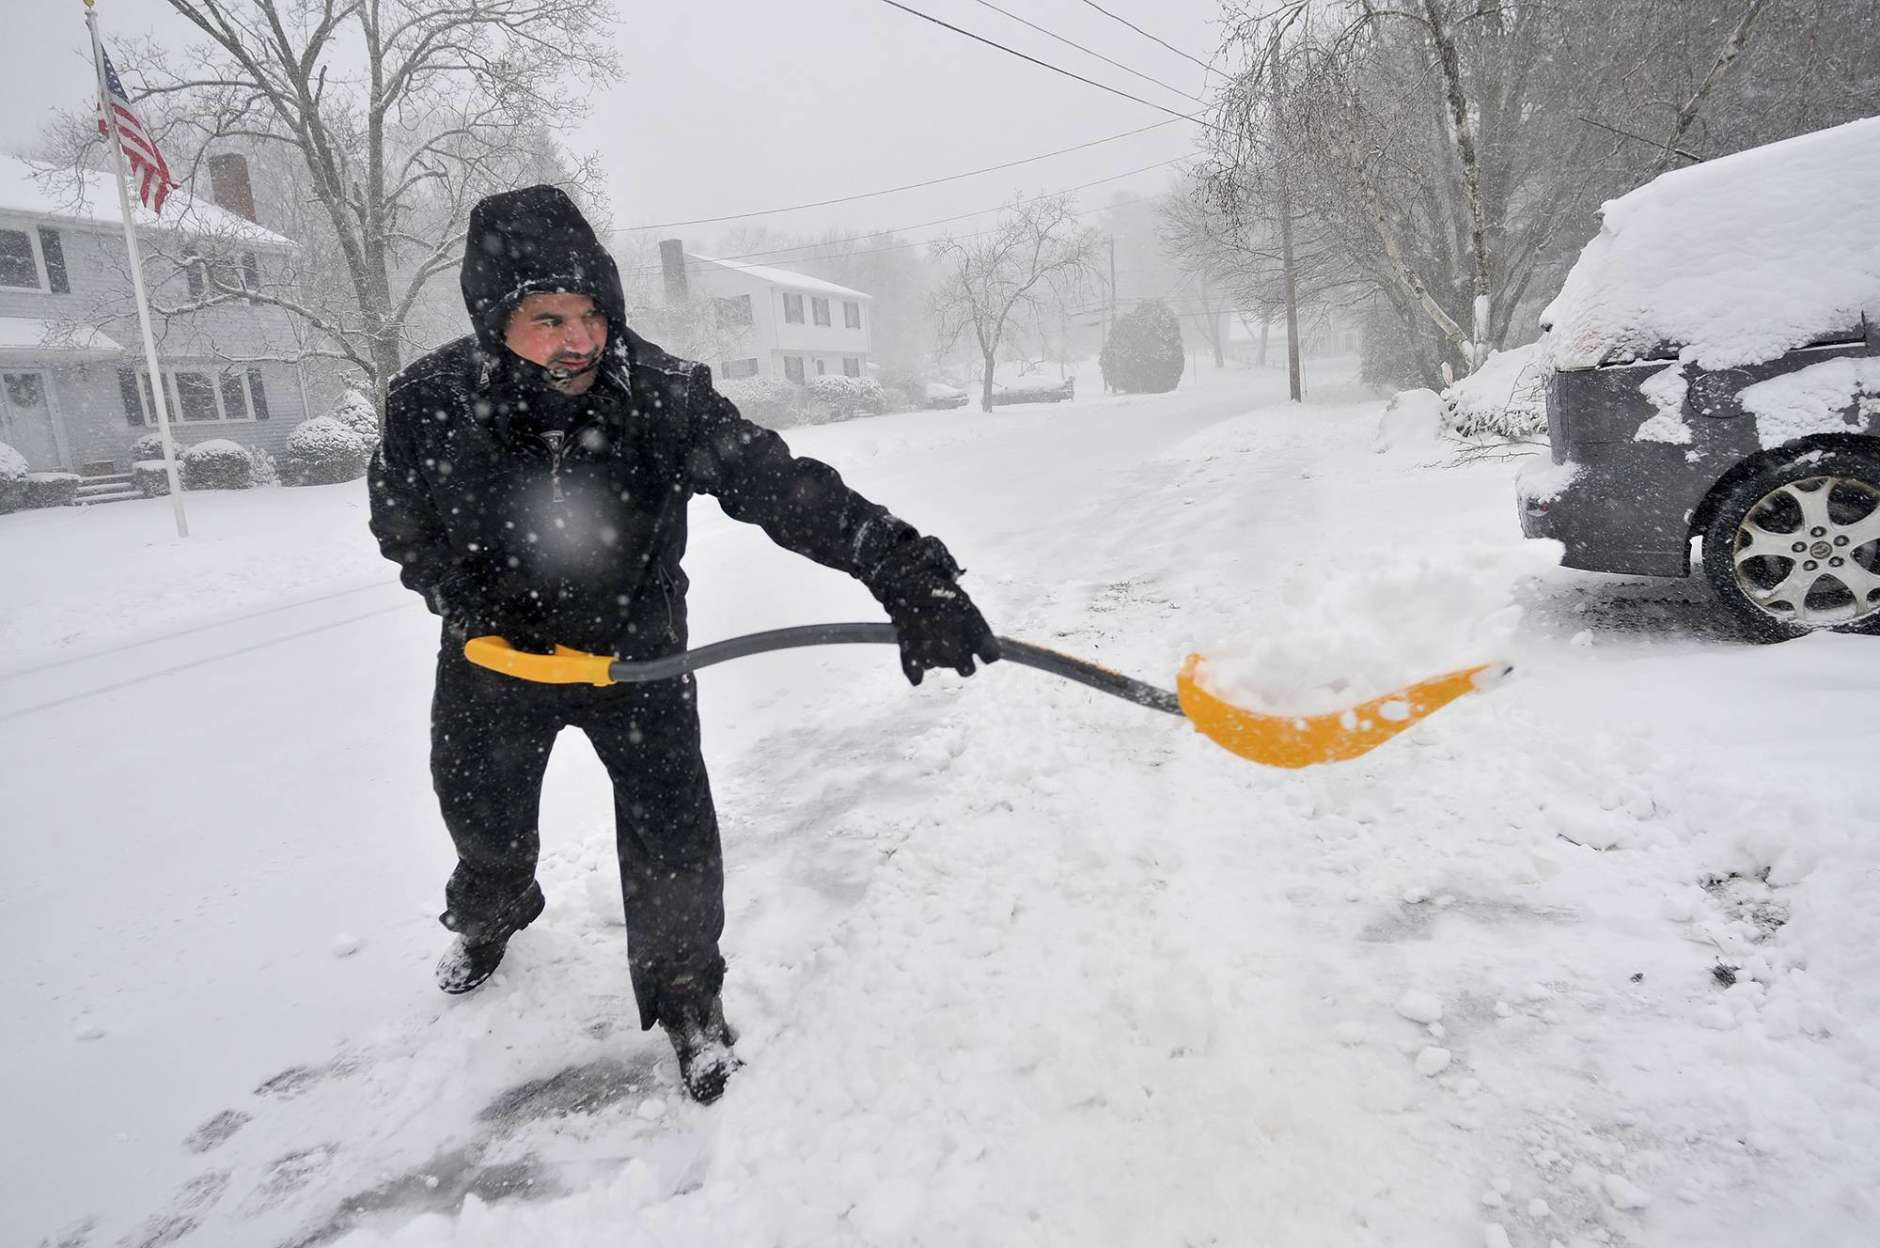 Rob Yozzo gets an early start shoveling snow from his driveway at his Birch Tree Road home in Foxborough, Mass., during a snowstorm, Thursday, Feb. 9, 2017. (Mark Stockwell/The Sun Chronicle via AP)